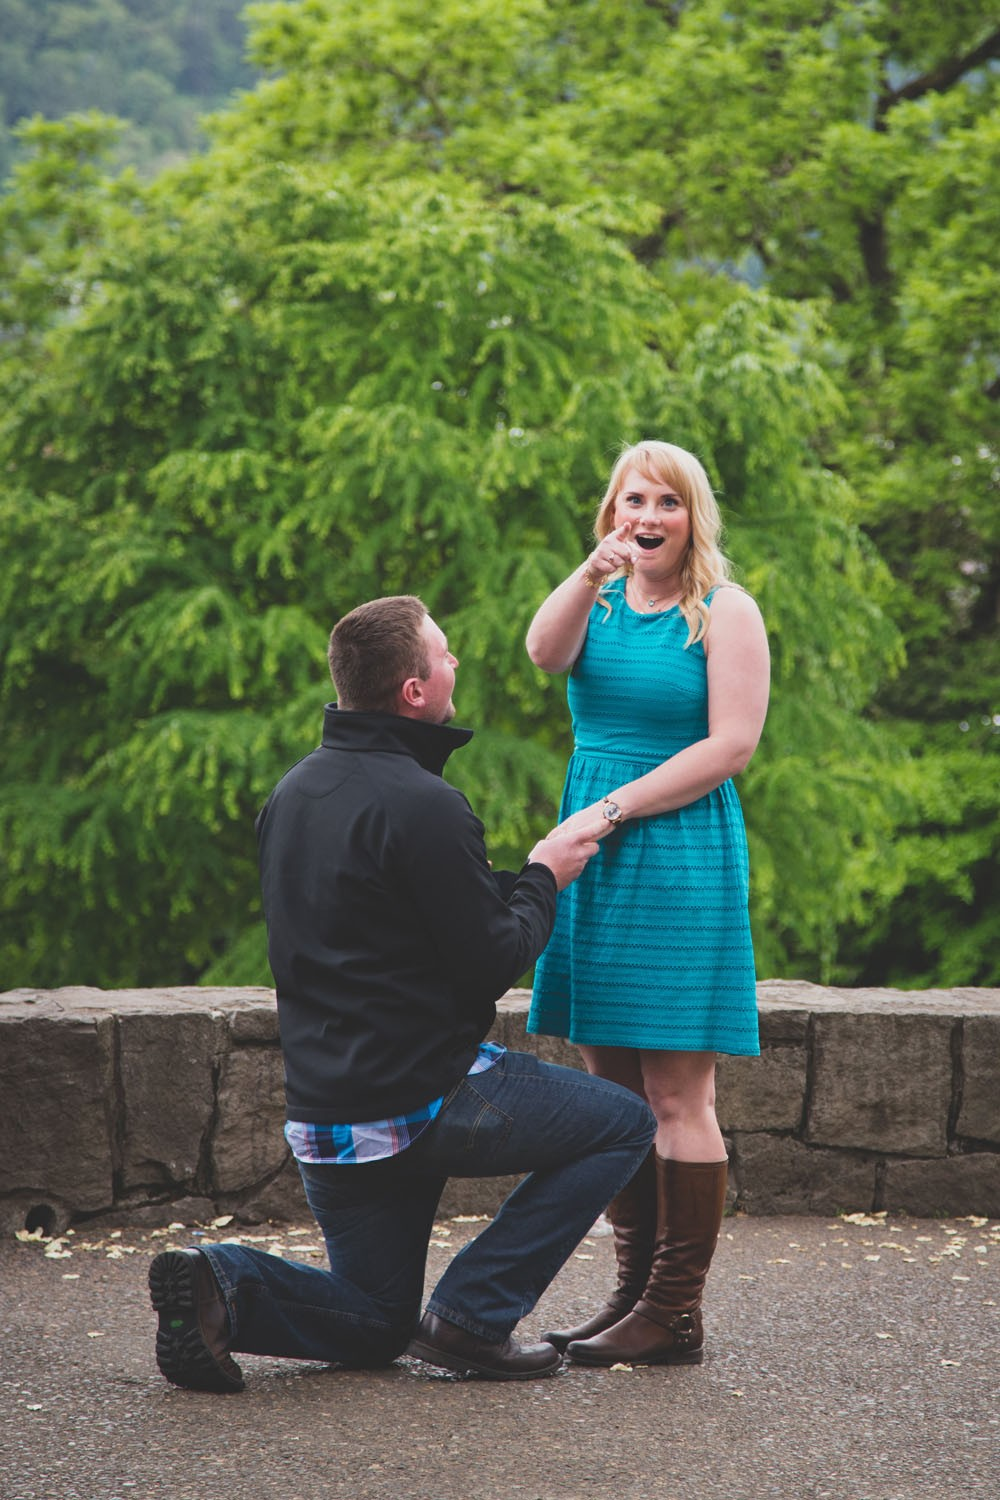 Rachael&Brandon Proposal Cat Dossett I Take Photos-4